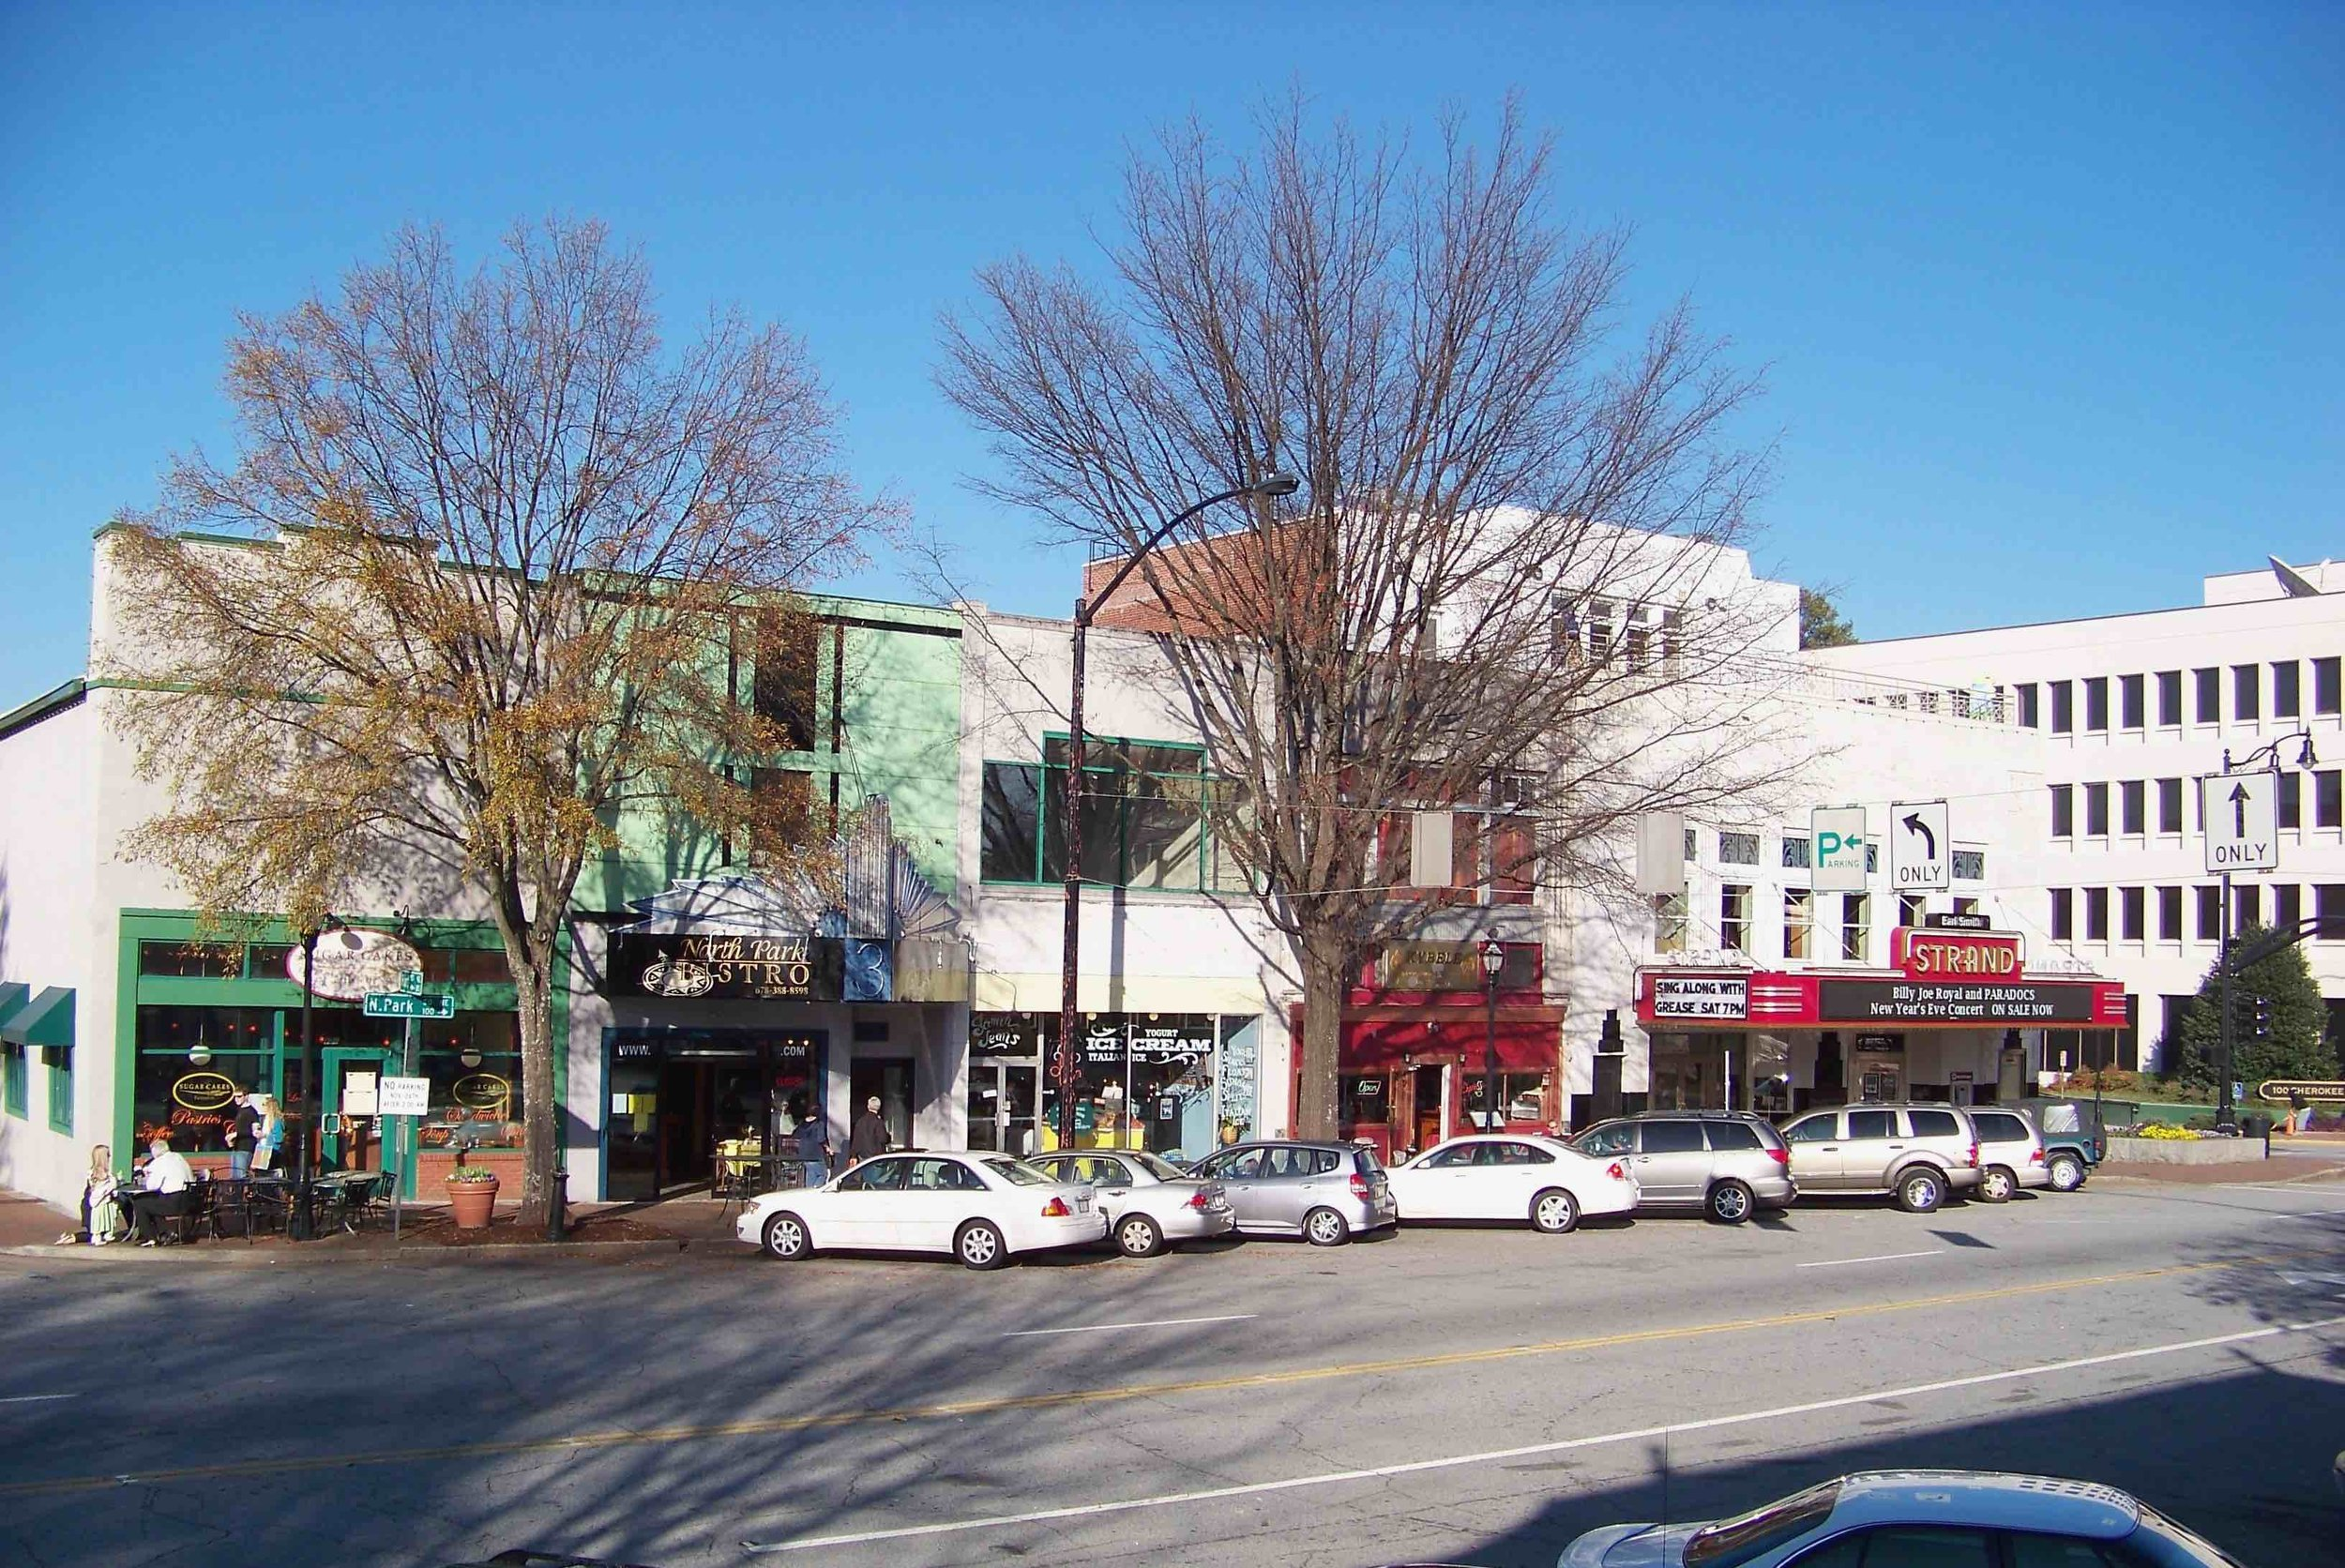 A small enclave of productive, human-scale development in downtown Marietta. (Source: Wikimedia Commons)